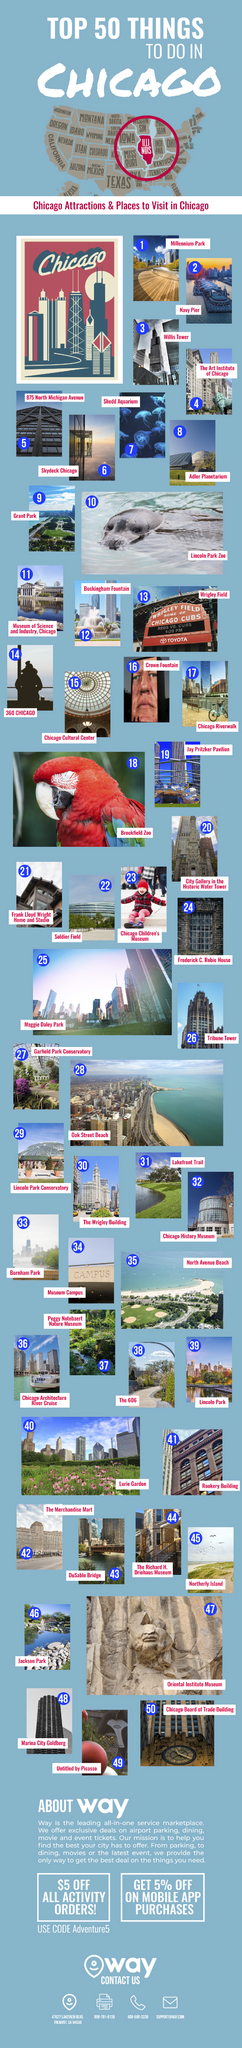 Top-Things-to-Do-in-Chicago-infographic-plaza